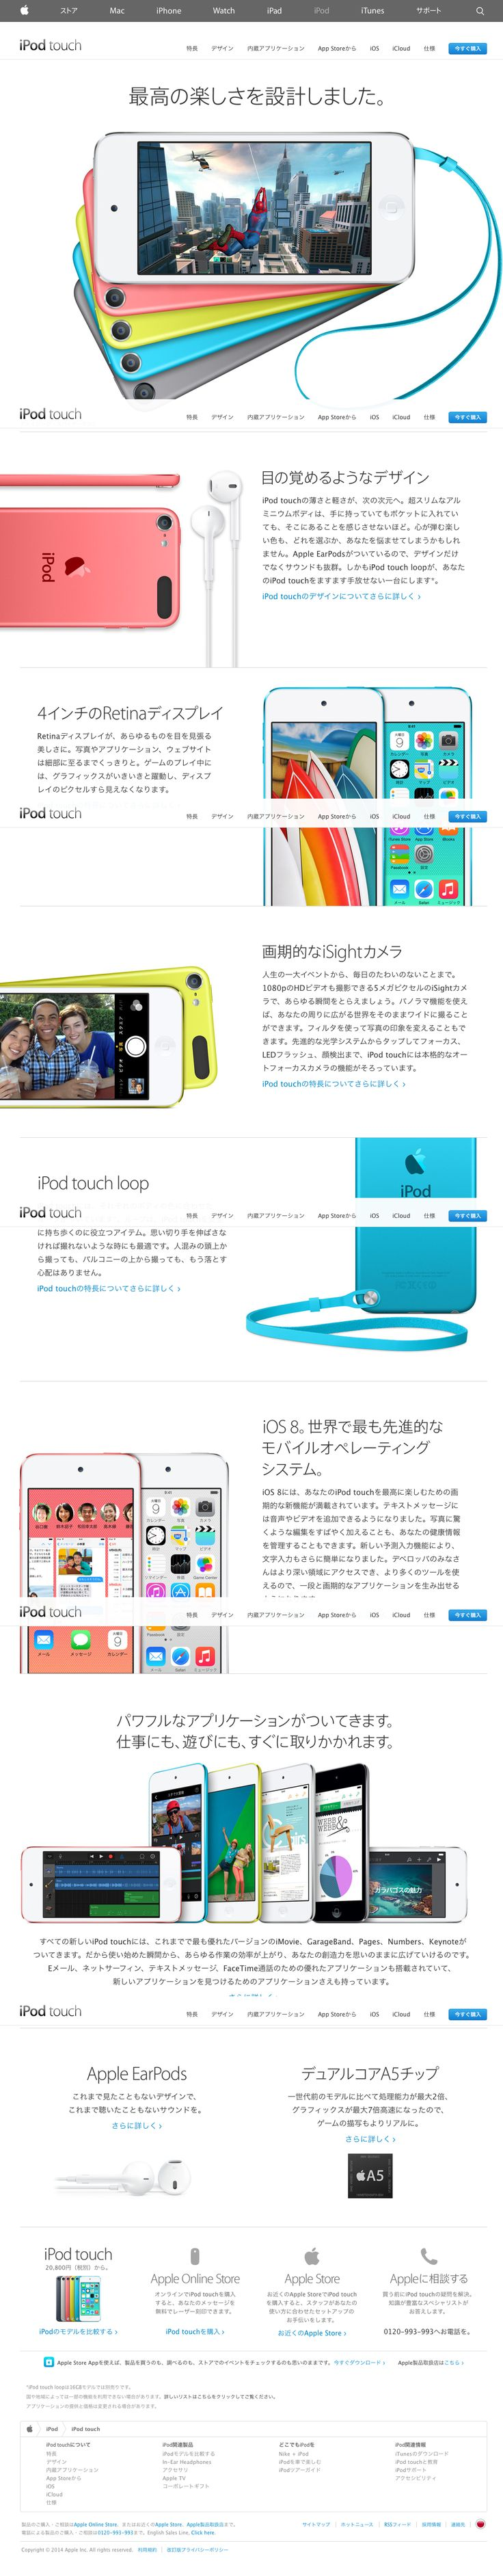 iPod touch: just before it's gone